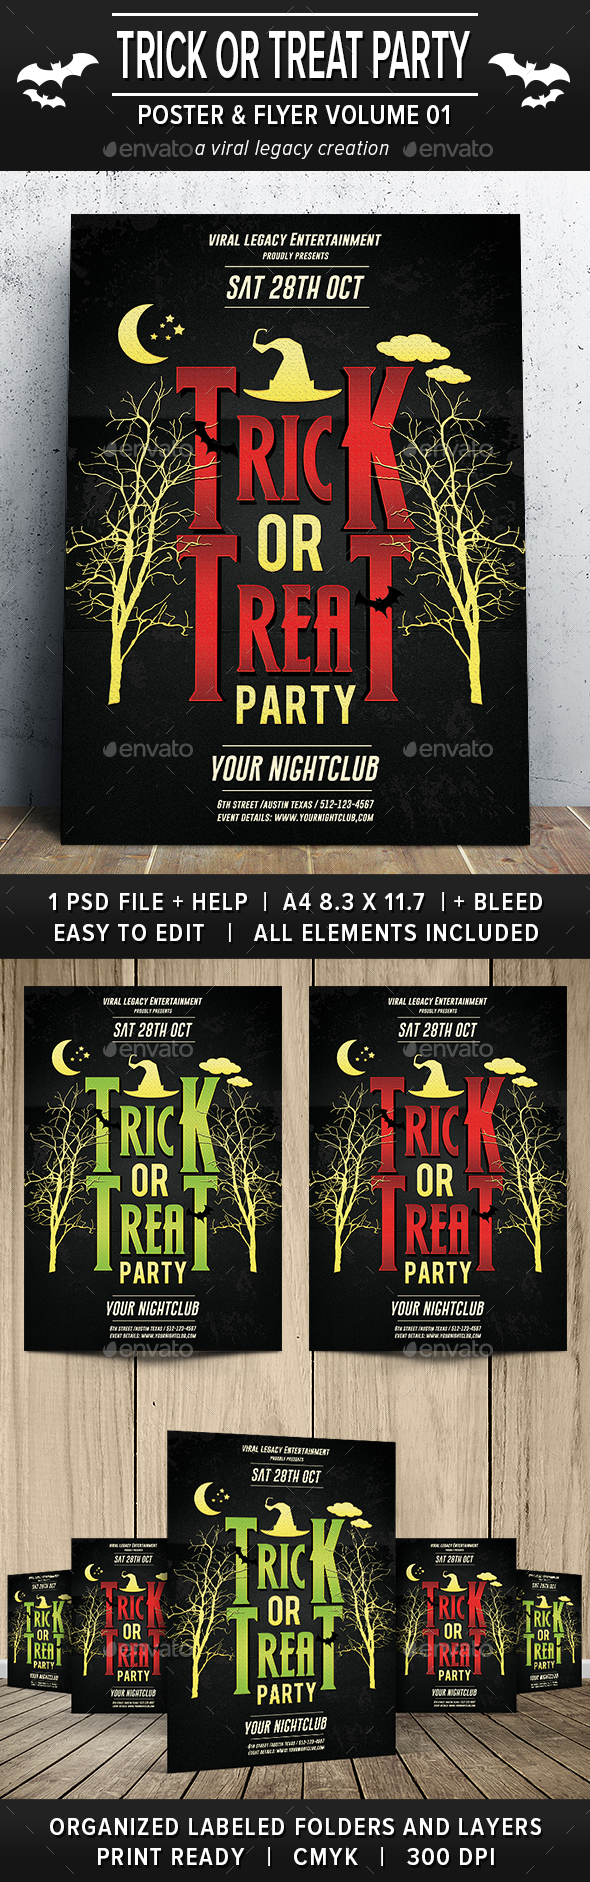 Trick or Treat Party Poster / Flyer V01 - Flyers Print Templates